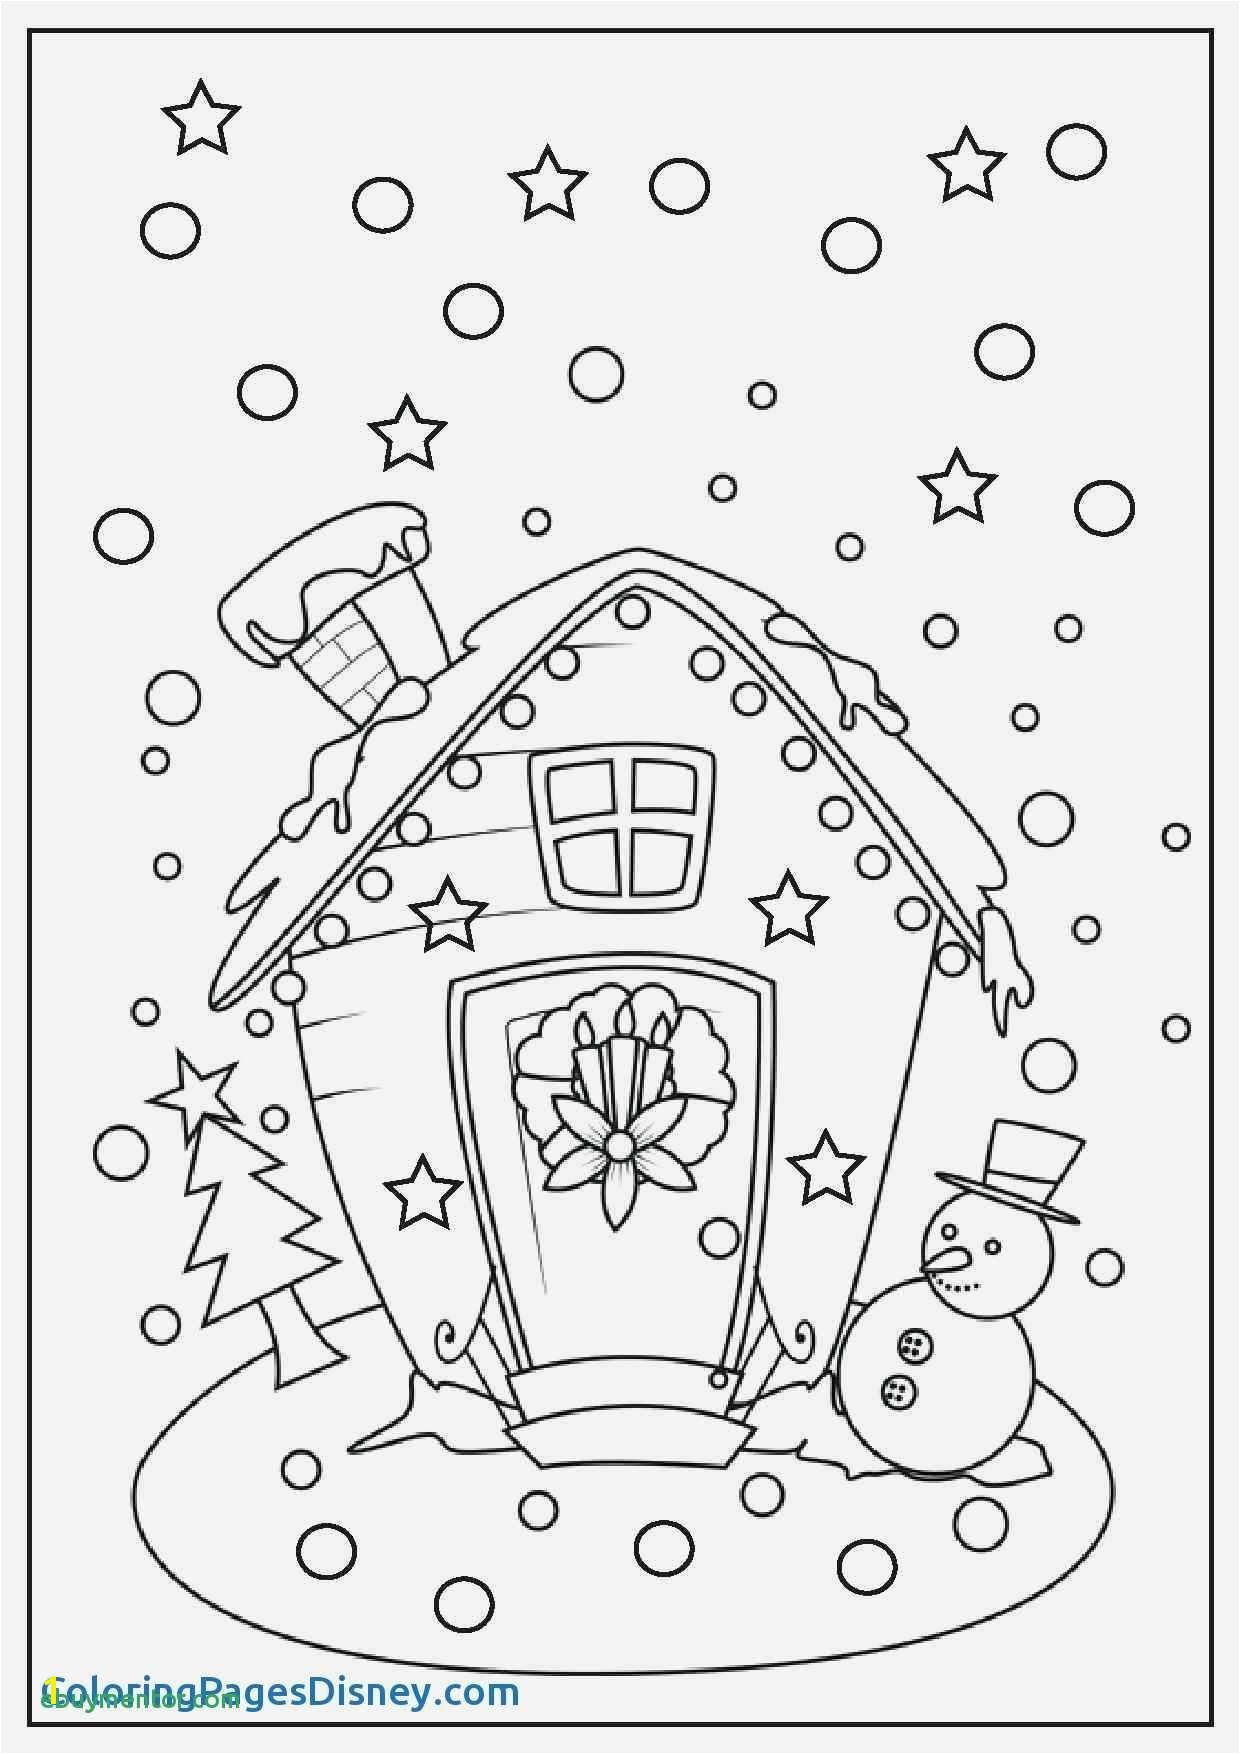 Christmas Coloring In Sheets Christmas Coloring Pages toddlers Cool Coloring Printables 0d – Fun